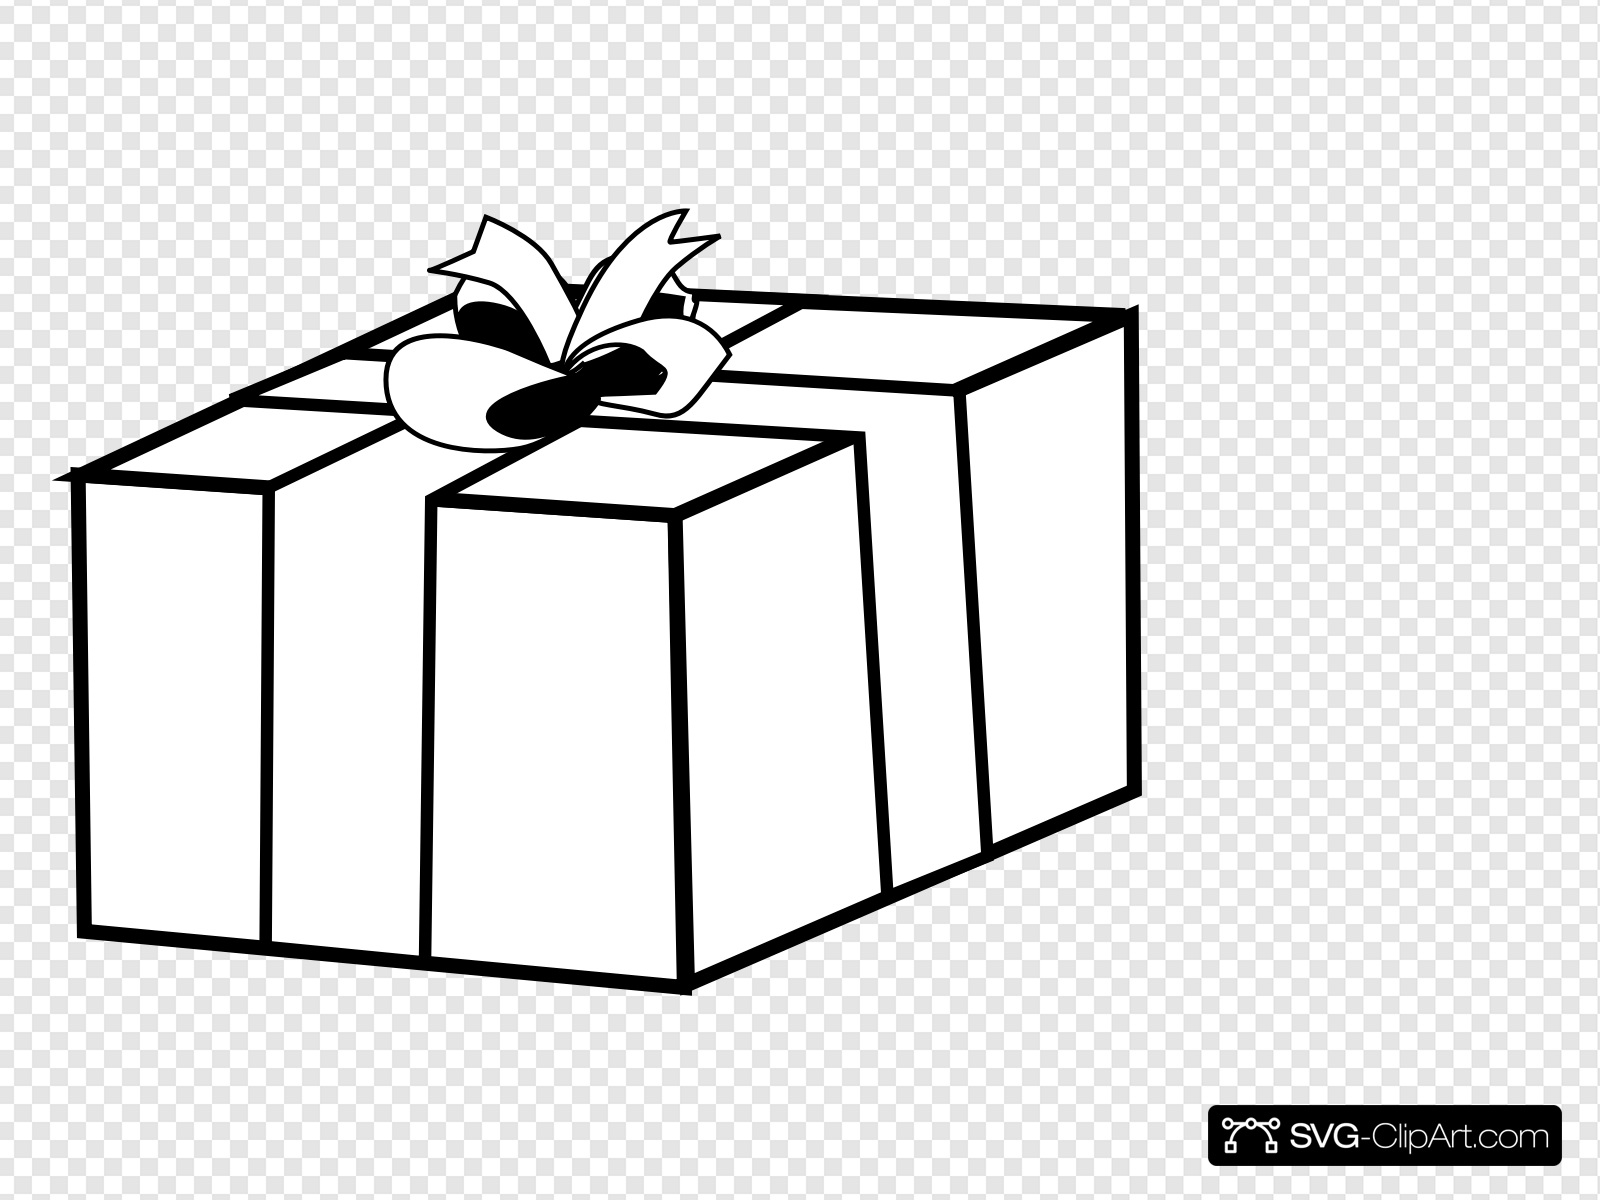 Gift clip art icon. Gifts clipart present outline